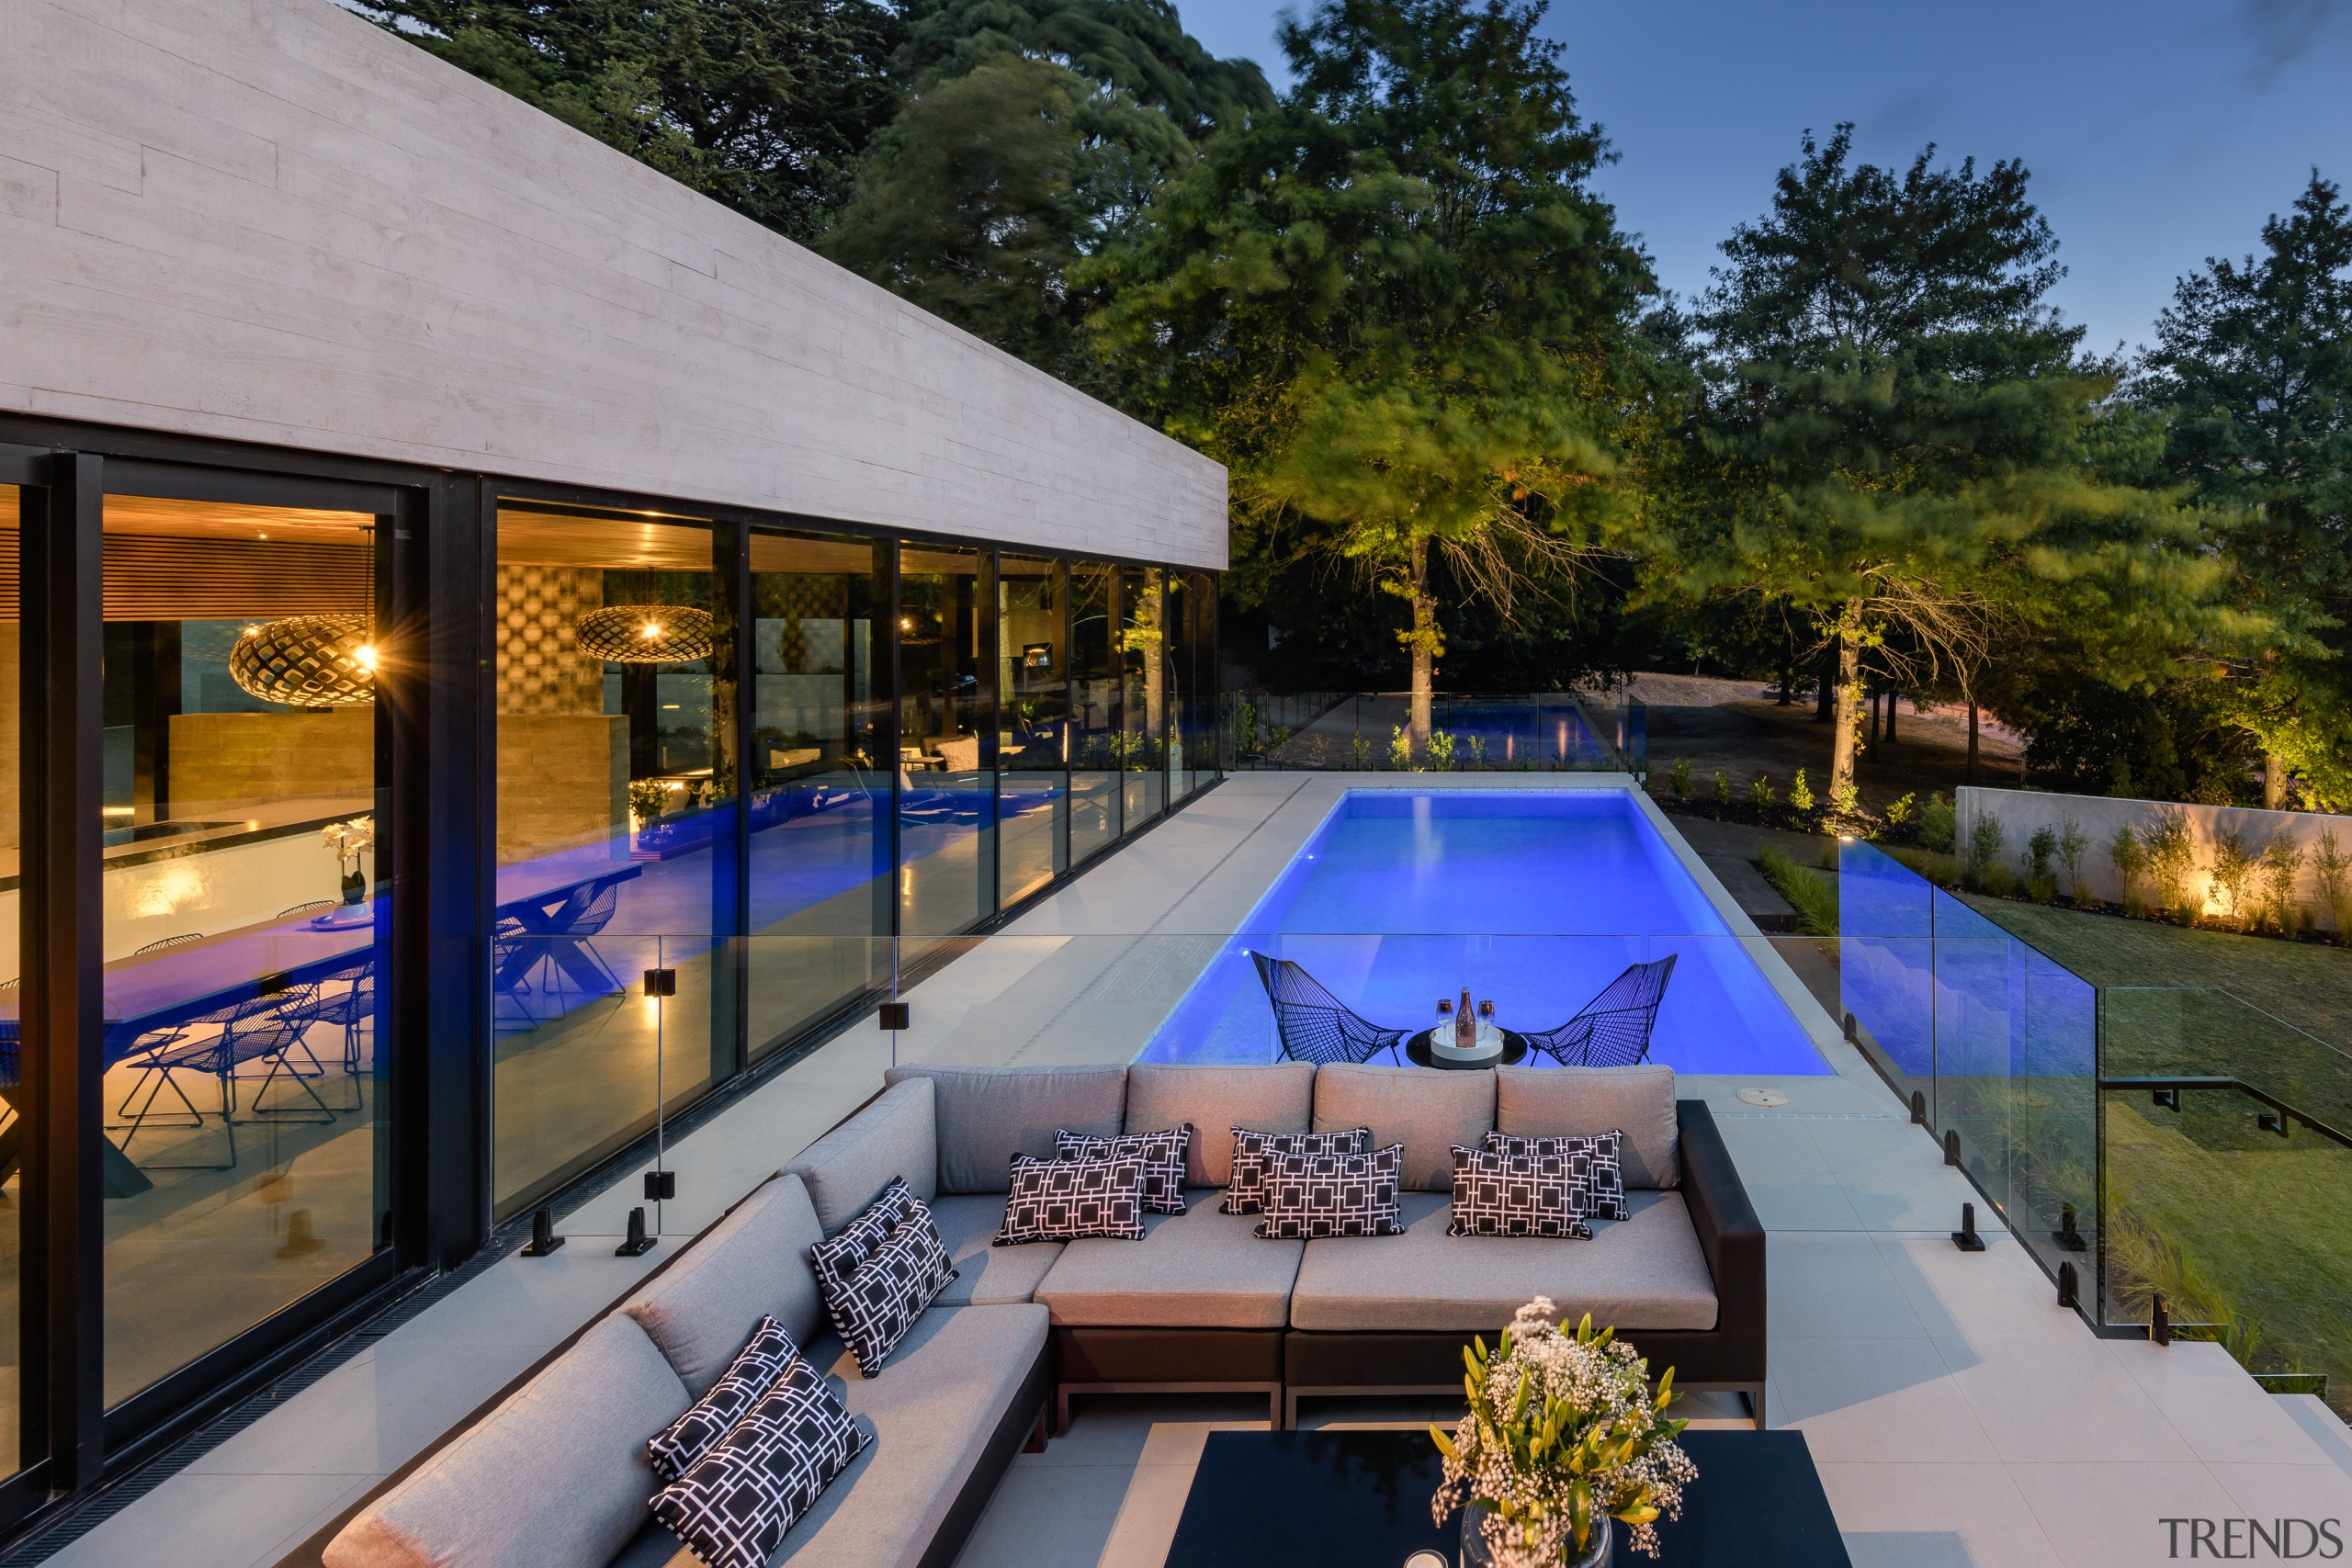 For this project by Freeman Ball Developments, tilt-panel architecture, backyard, building, courtyard, design, estate, home, house, interior design, landscaping, leisure, lighting, patio, property, real estate, reflecting pool, residential area, roof, room, swimming pool, tree, villa, gray, black